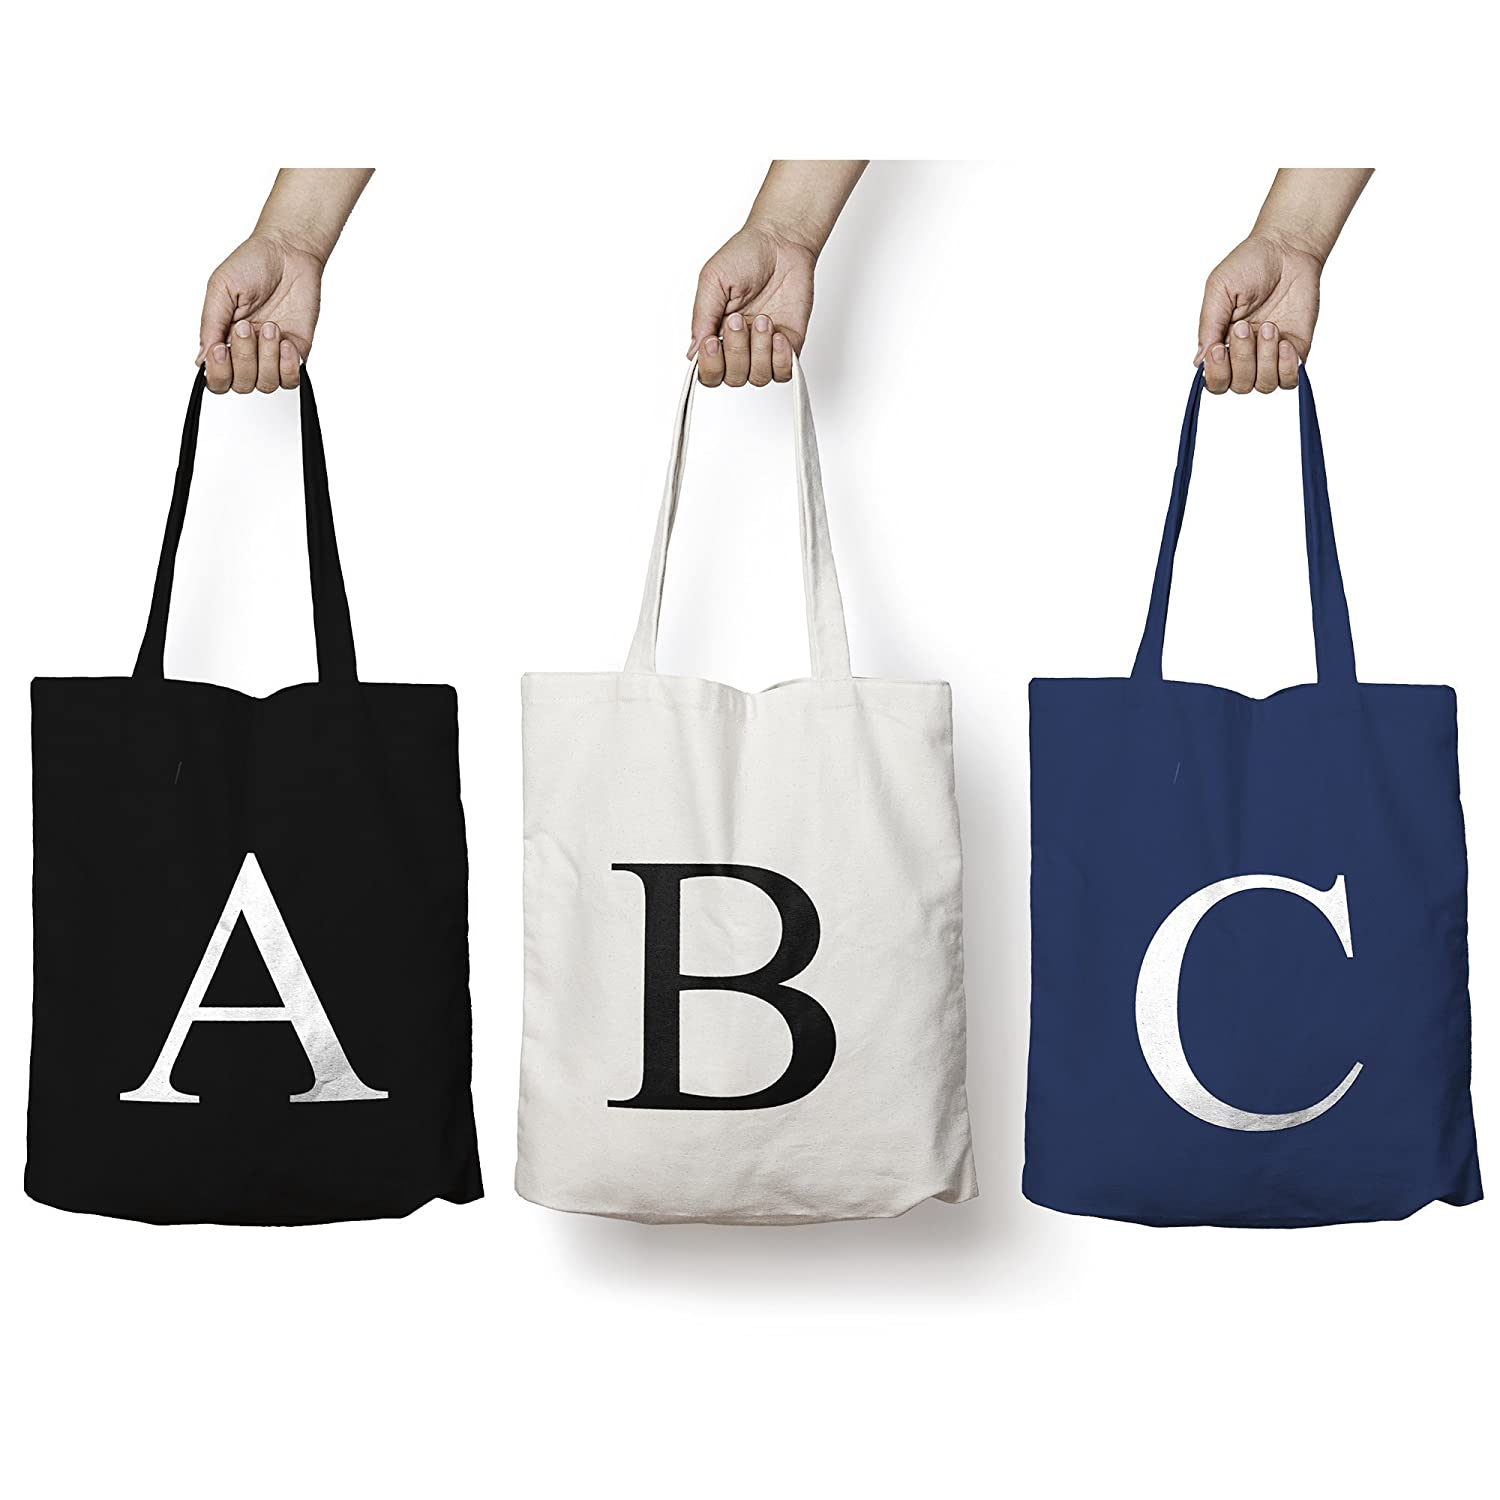 174bec29b Personalised Tote Bag ANY LETTER Alphabet Printed Cotton Tote Shopper Bag:  Amazon.co.uk: Handmade